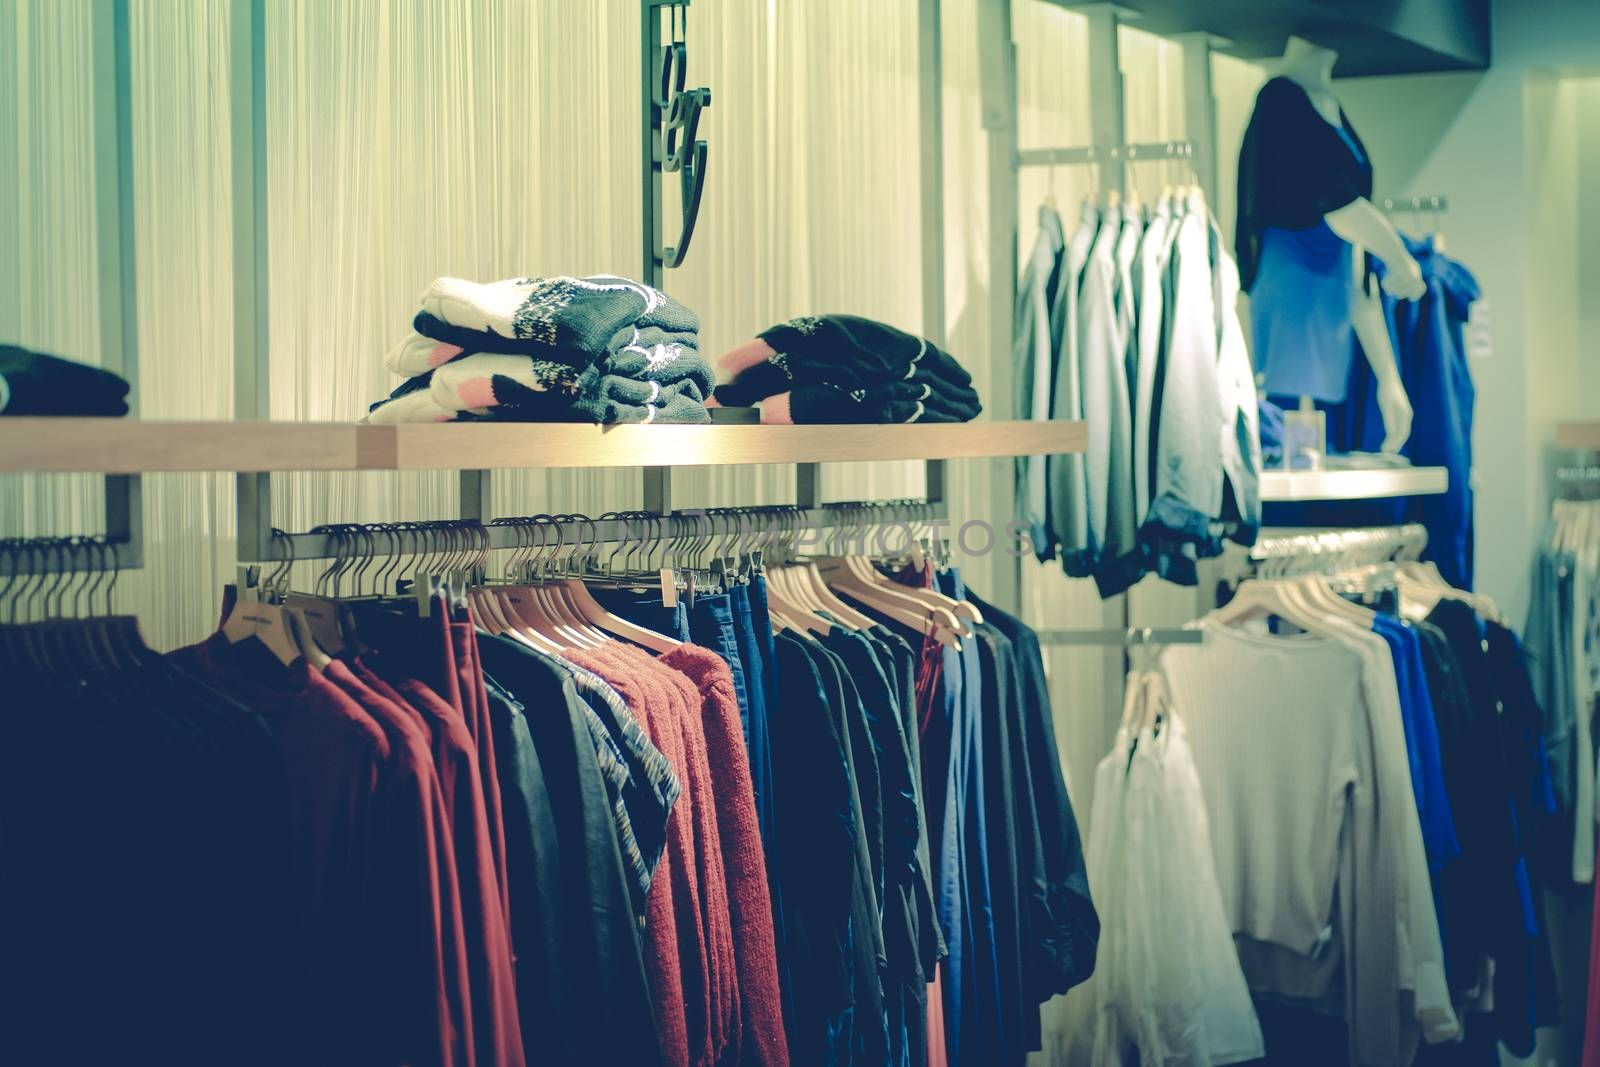 Fashion store filled with clothes for women